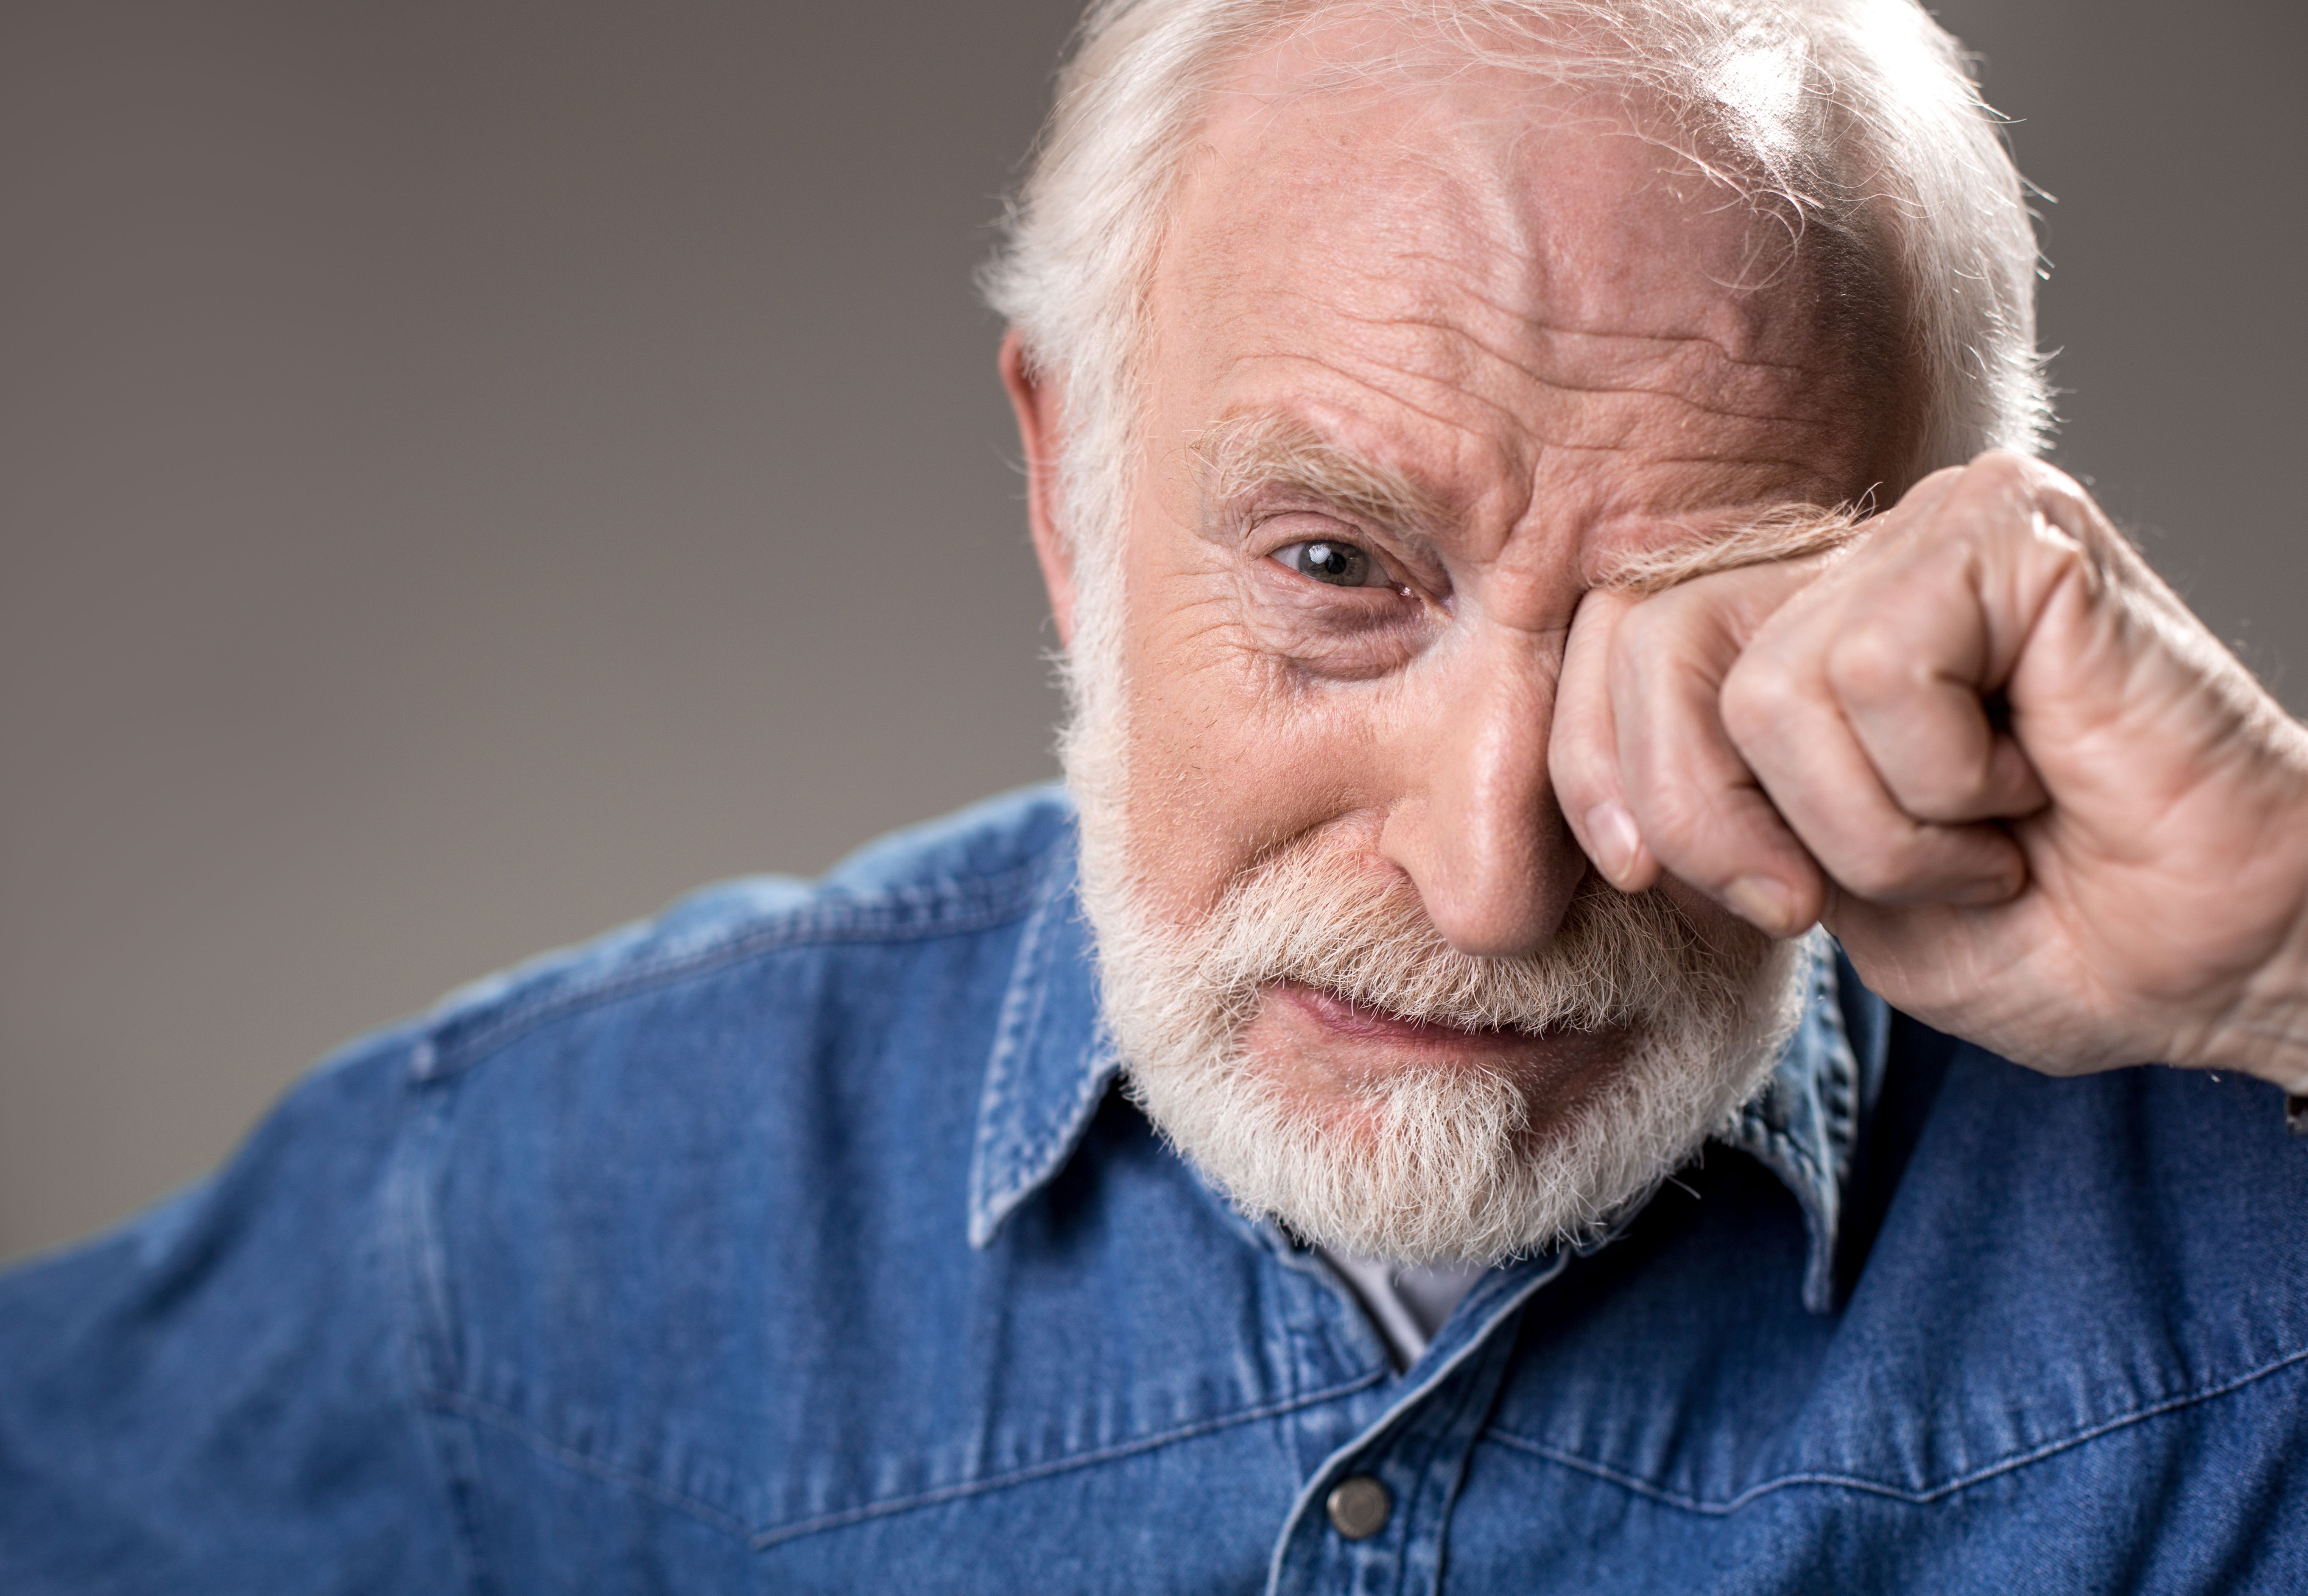 A crying old man | Source: Shutterstock